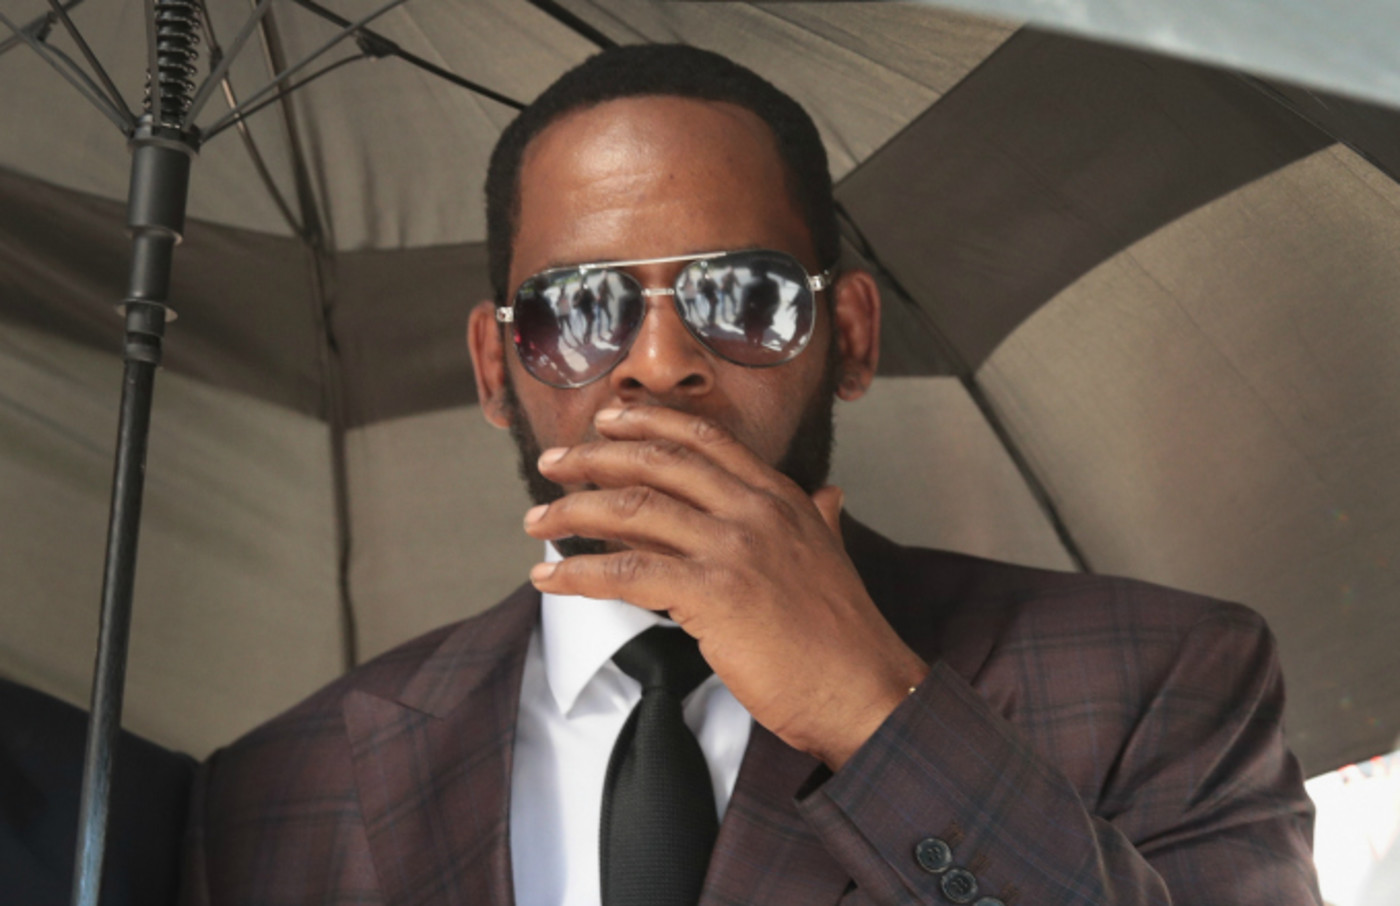 R&B singer R. Kelly covers his mouth